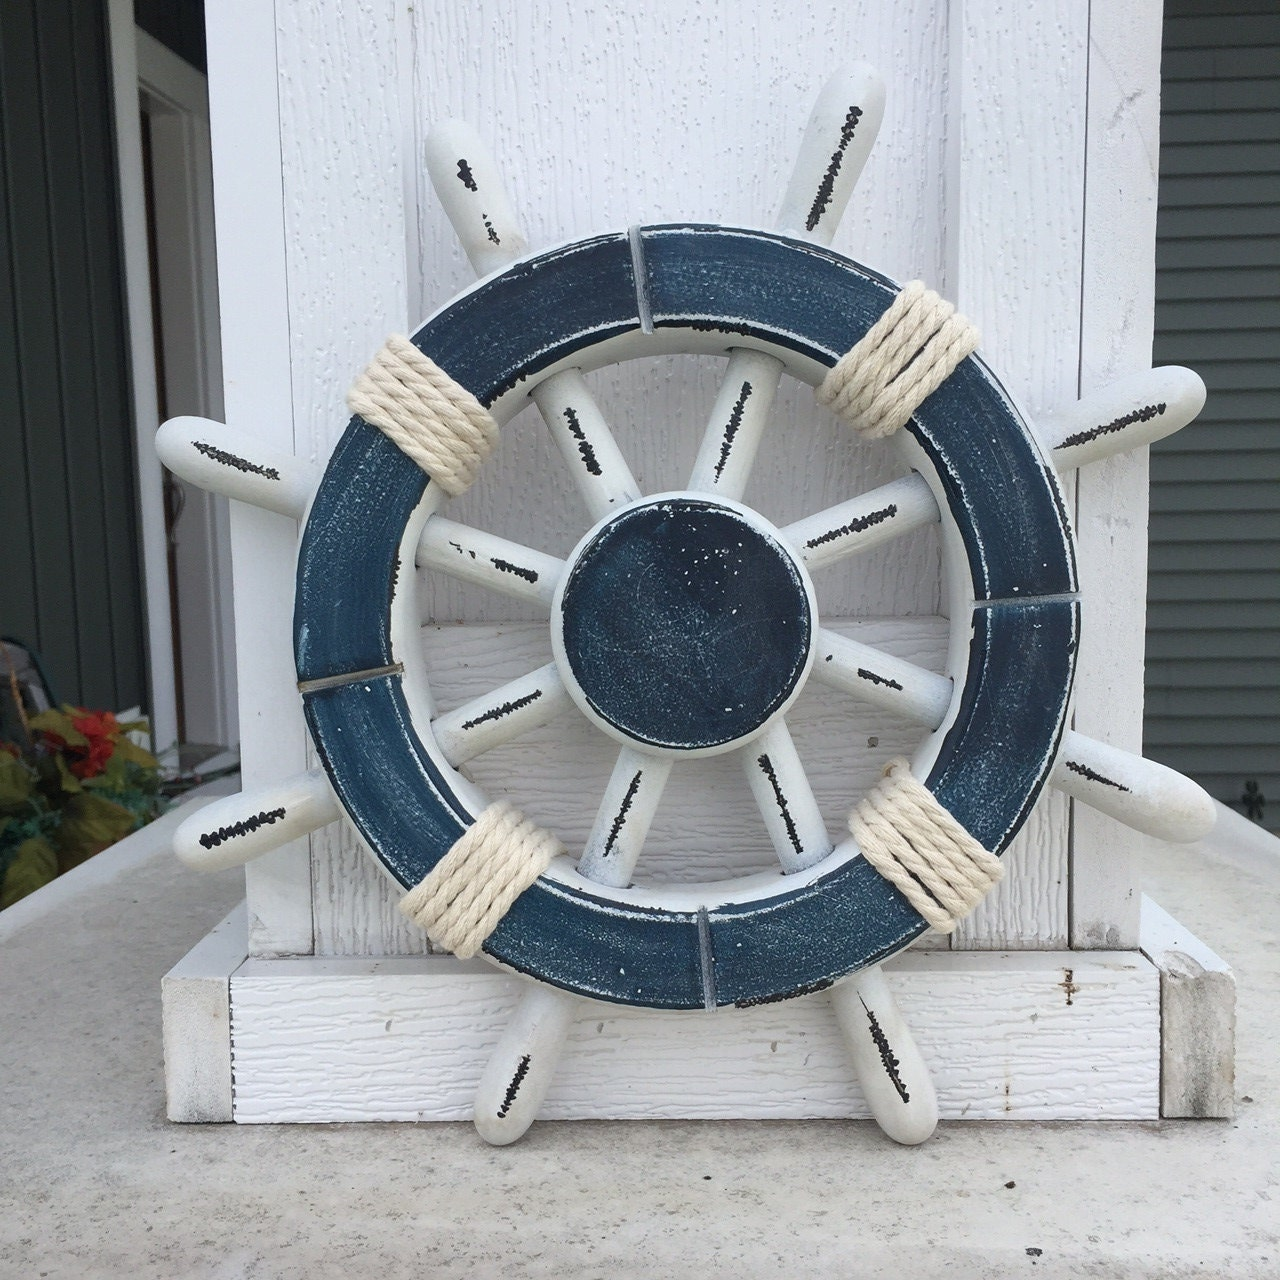 Nautical Wheel Decor: Rustic White And Dark Blue Nautical Ship Wheel Decorative